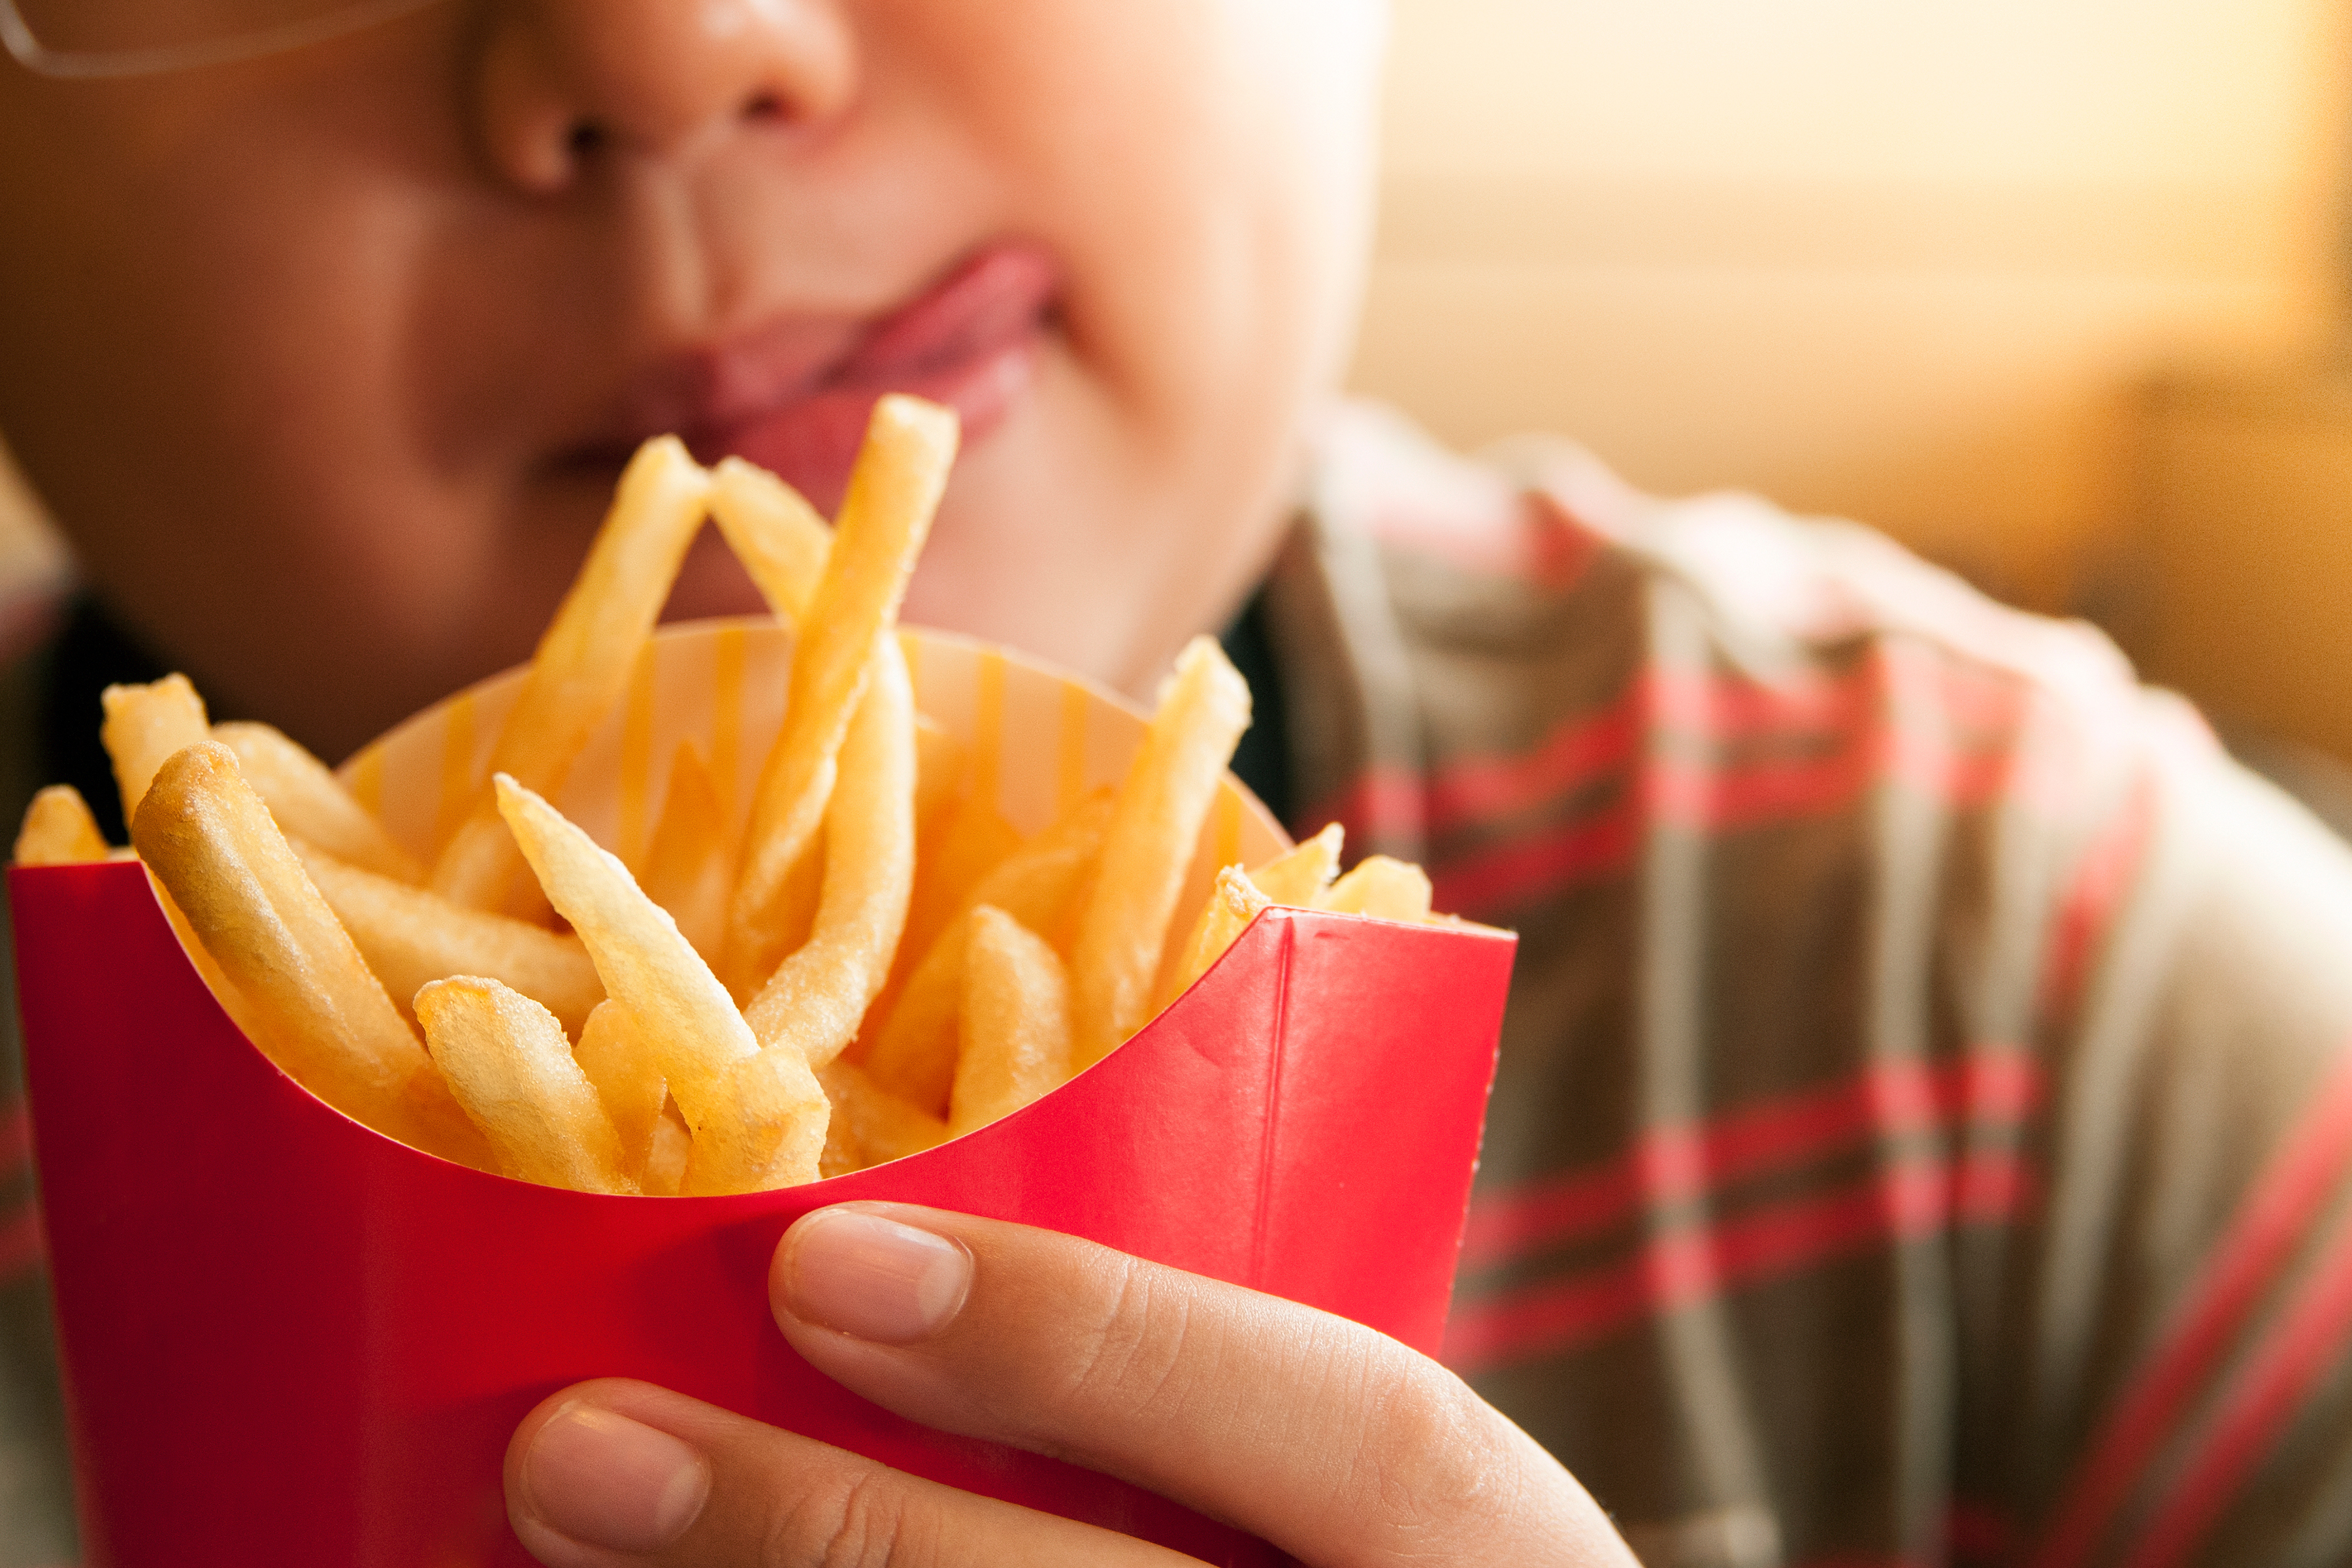 Study Teens Exposed To More Junk Food Ads Eat More Junk Food Health News Us News